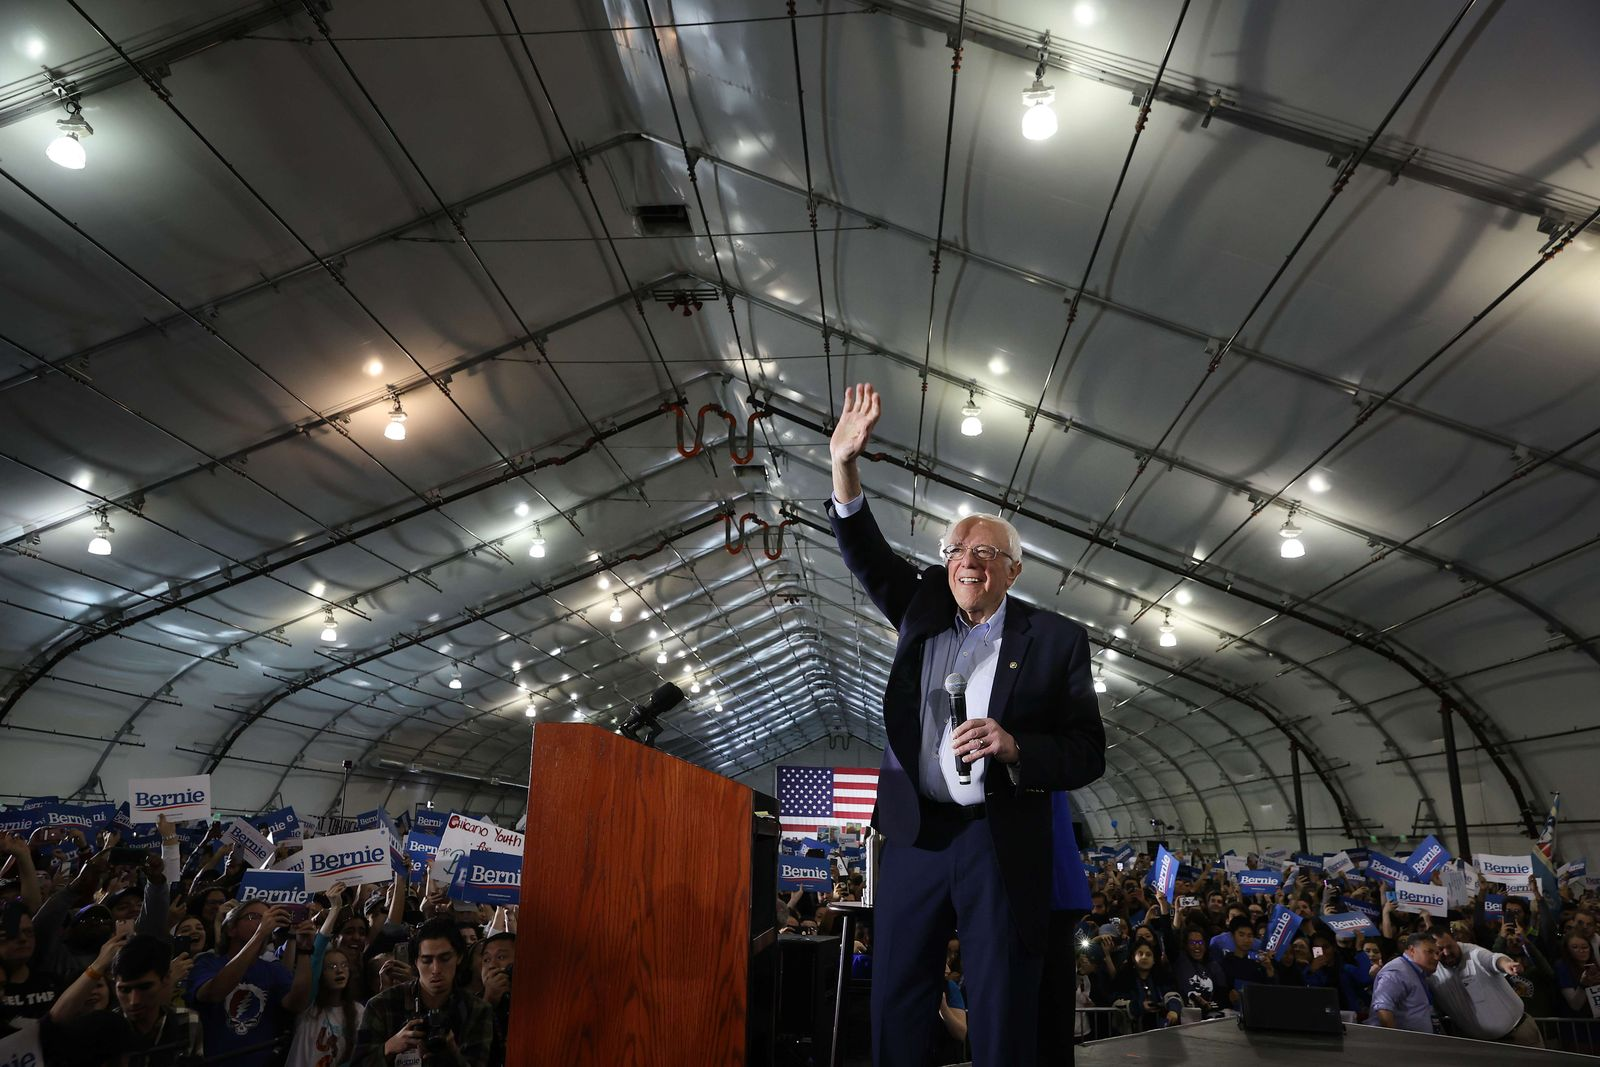 Presidential Candidate Bernie Sanders Campaigns Across U.S. Ahead Of Super Tuesday